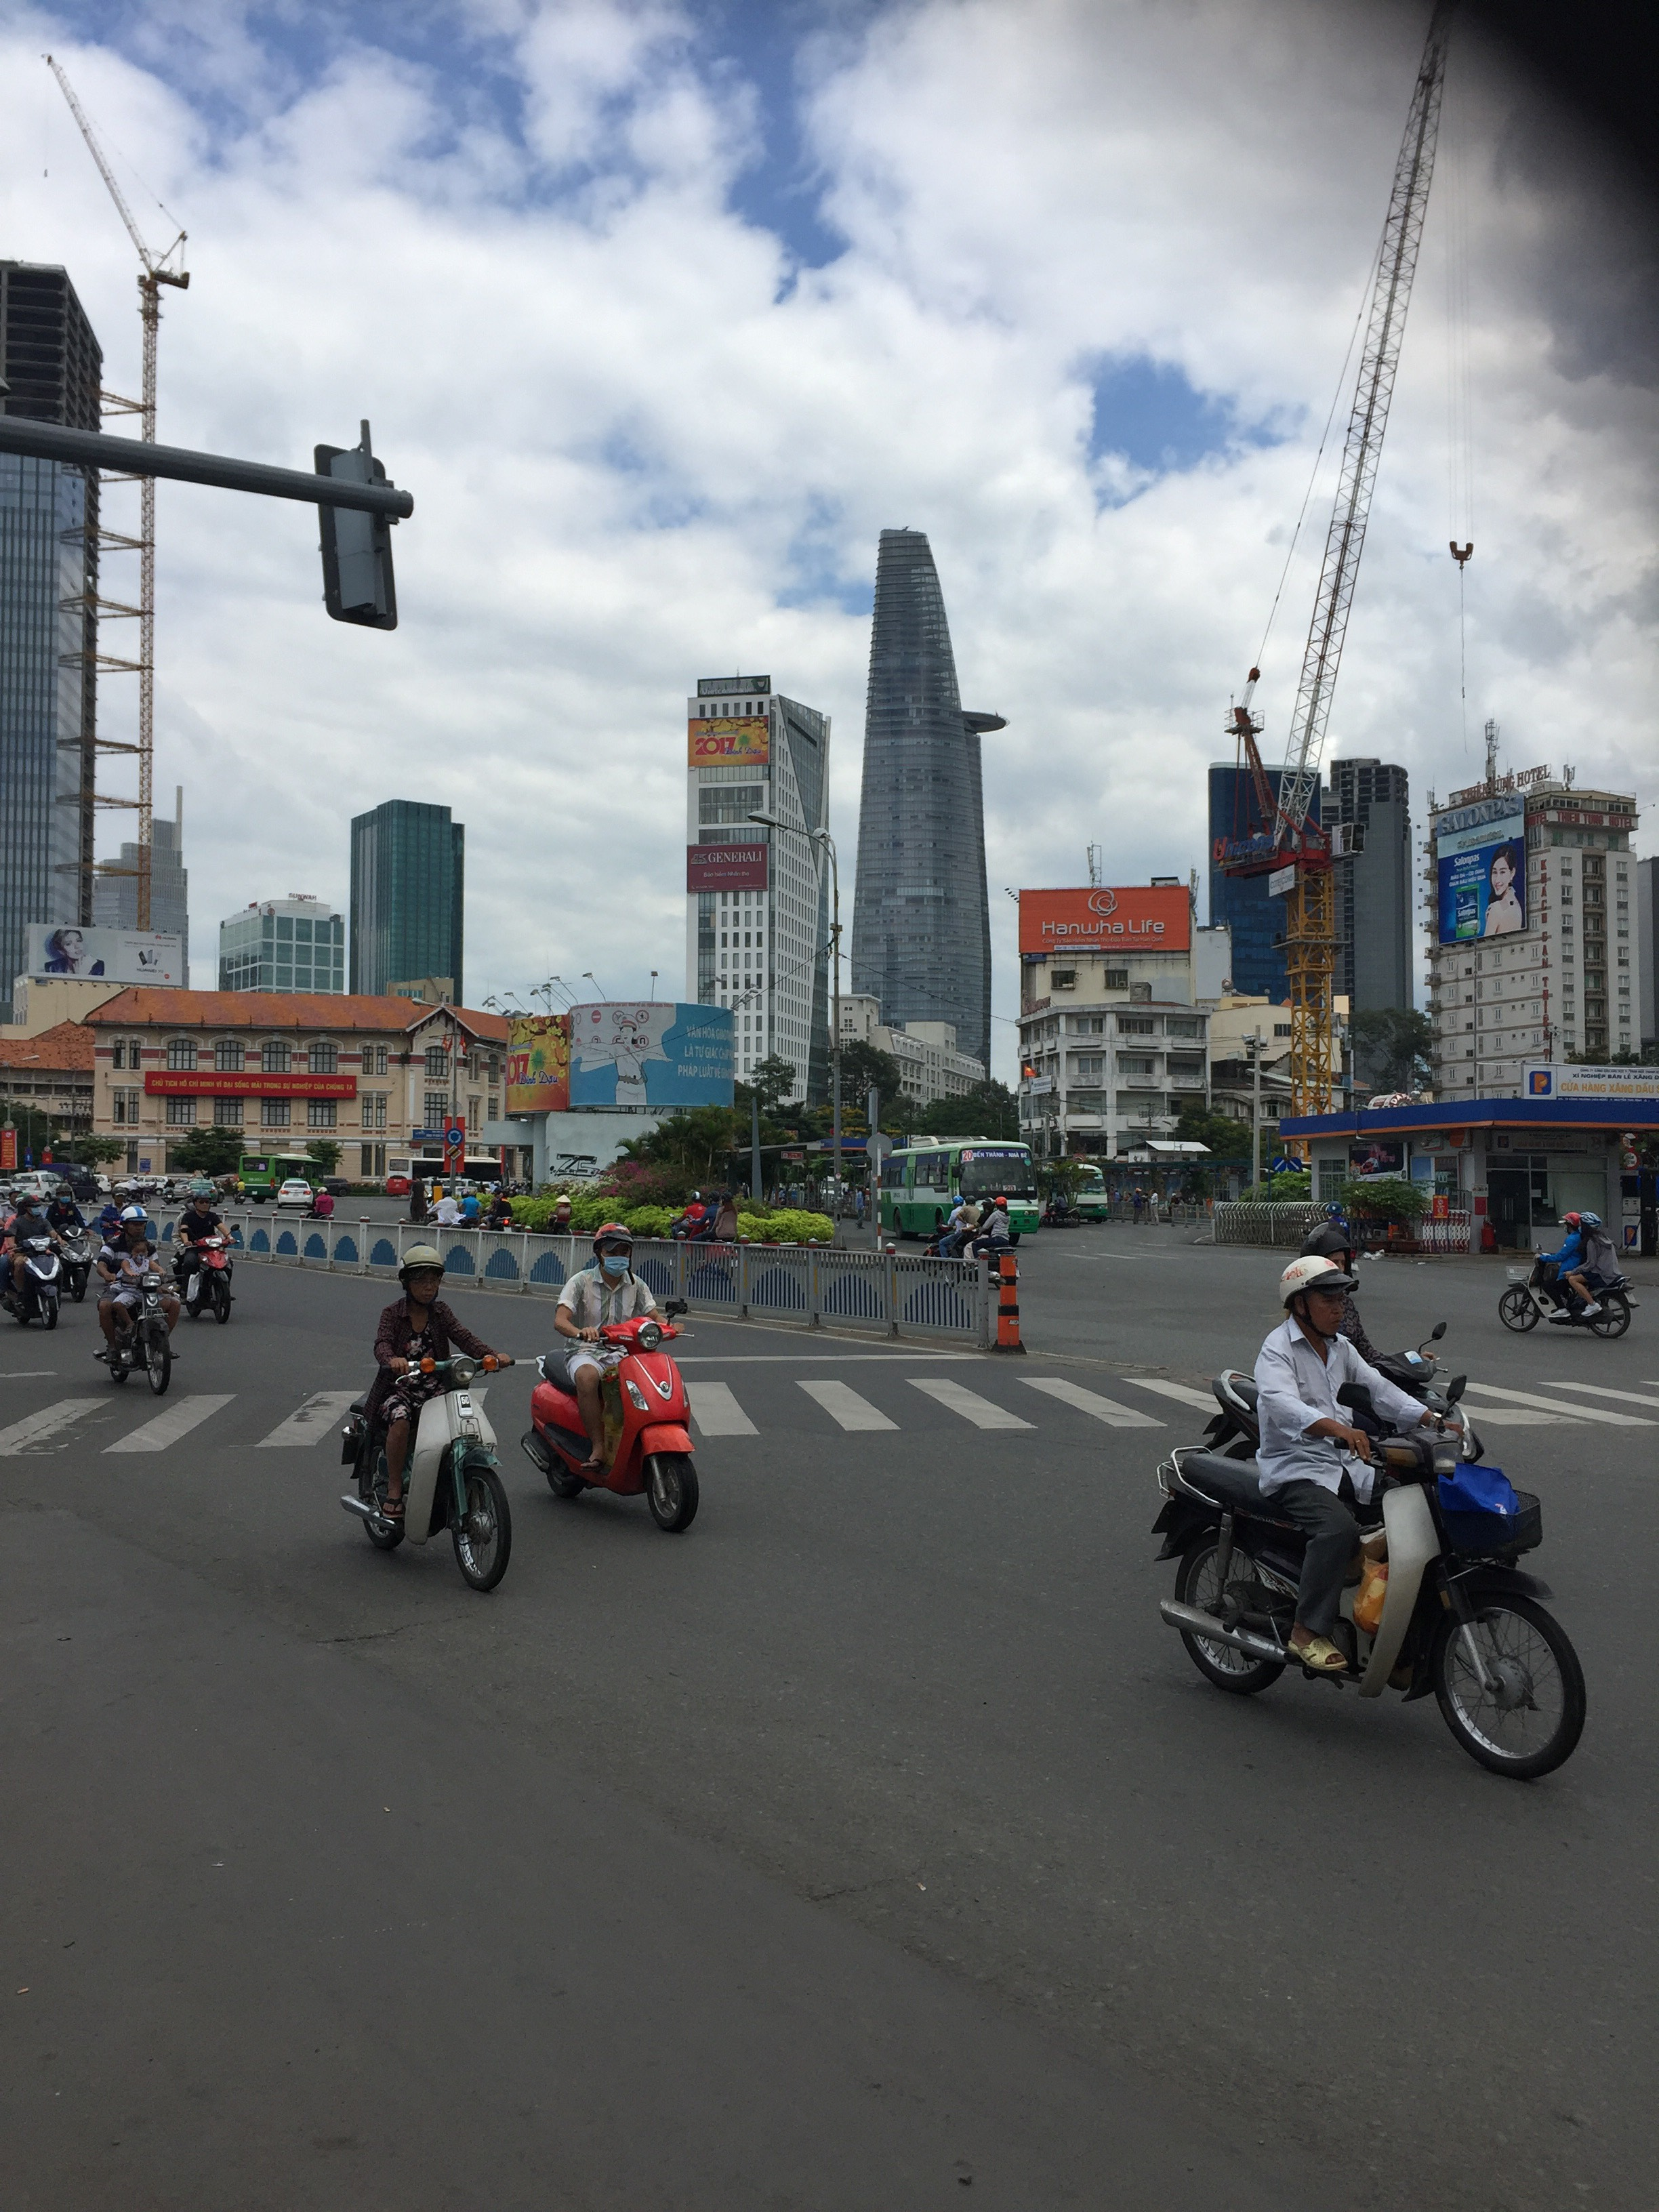 The energy of Ho Chi Minh City Vietnam - by Colin Speakman.jpeg